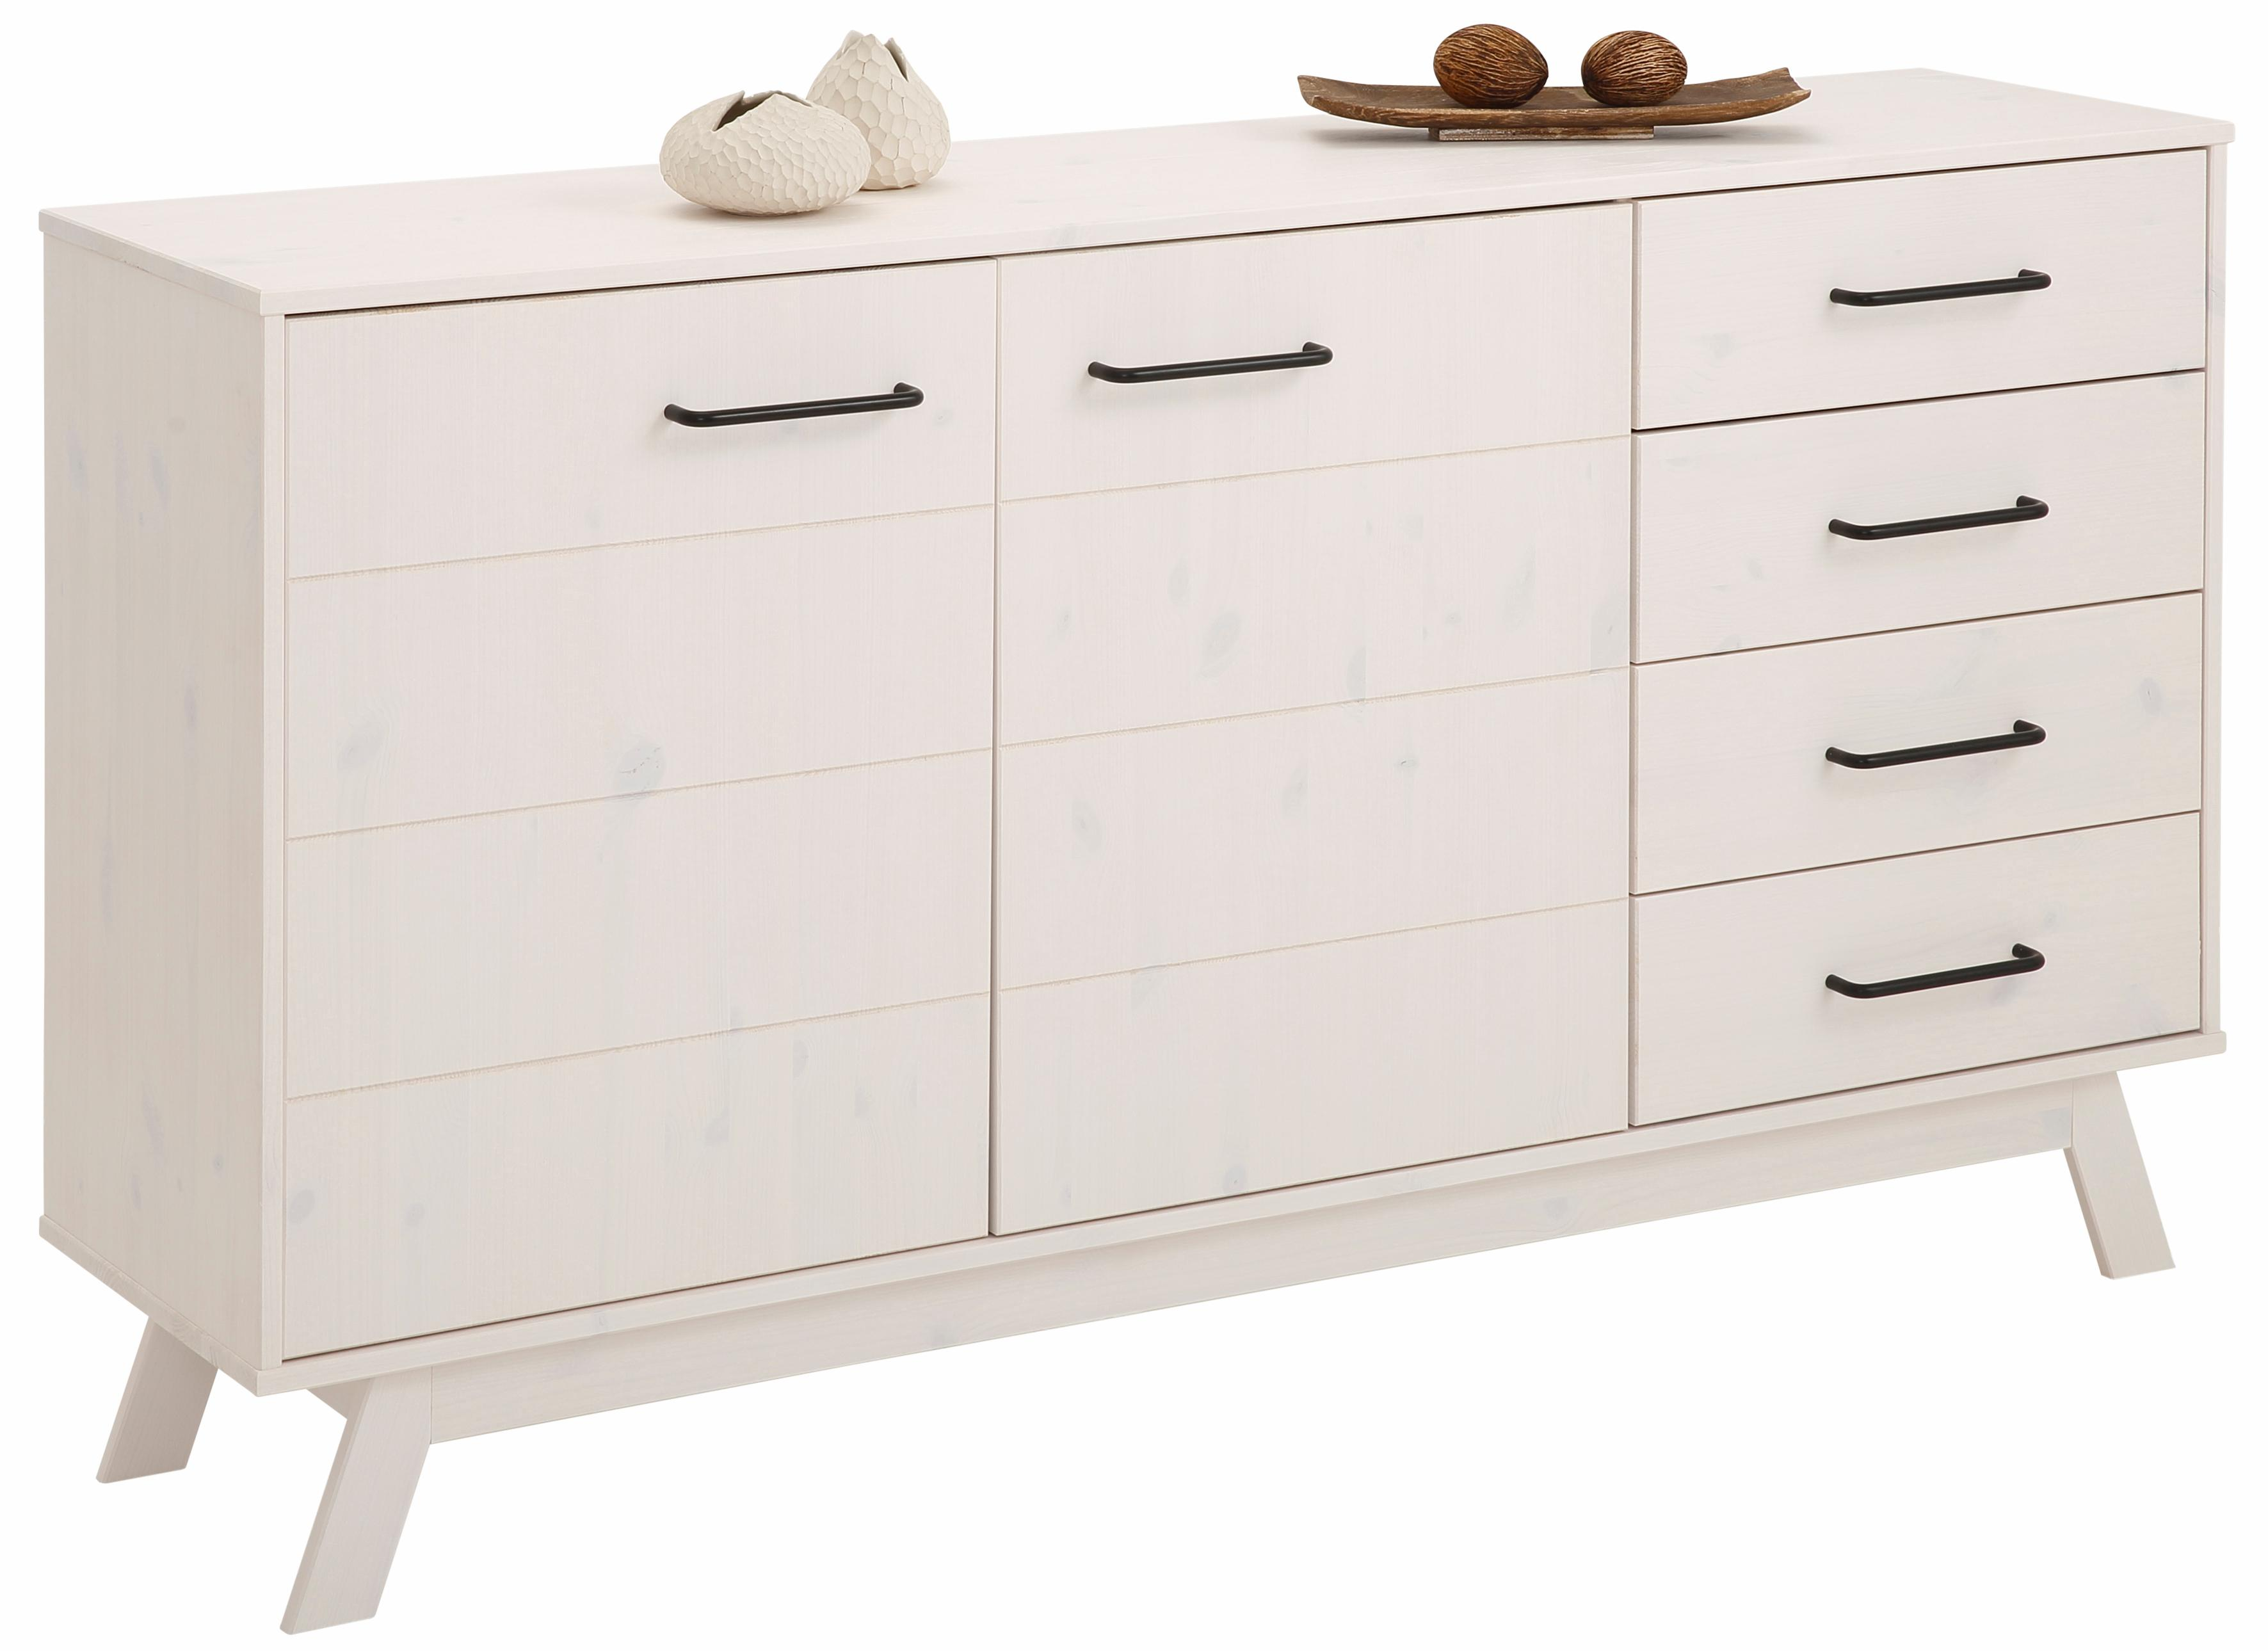 Home affaire Sideboard New Nordic Breite 150 cm